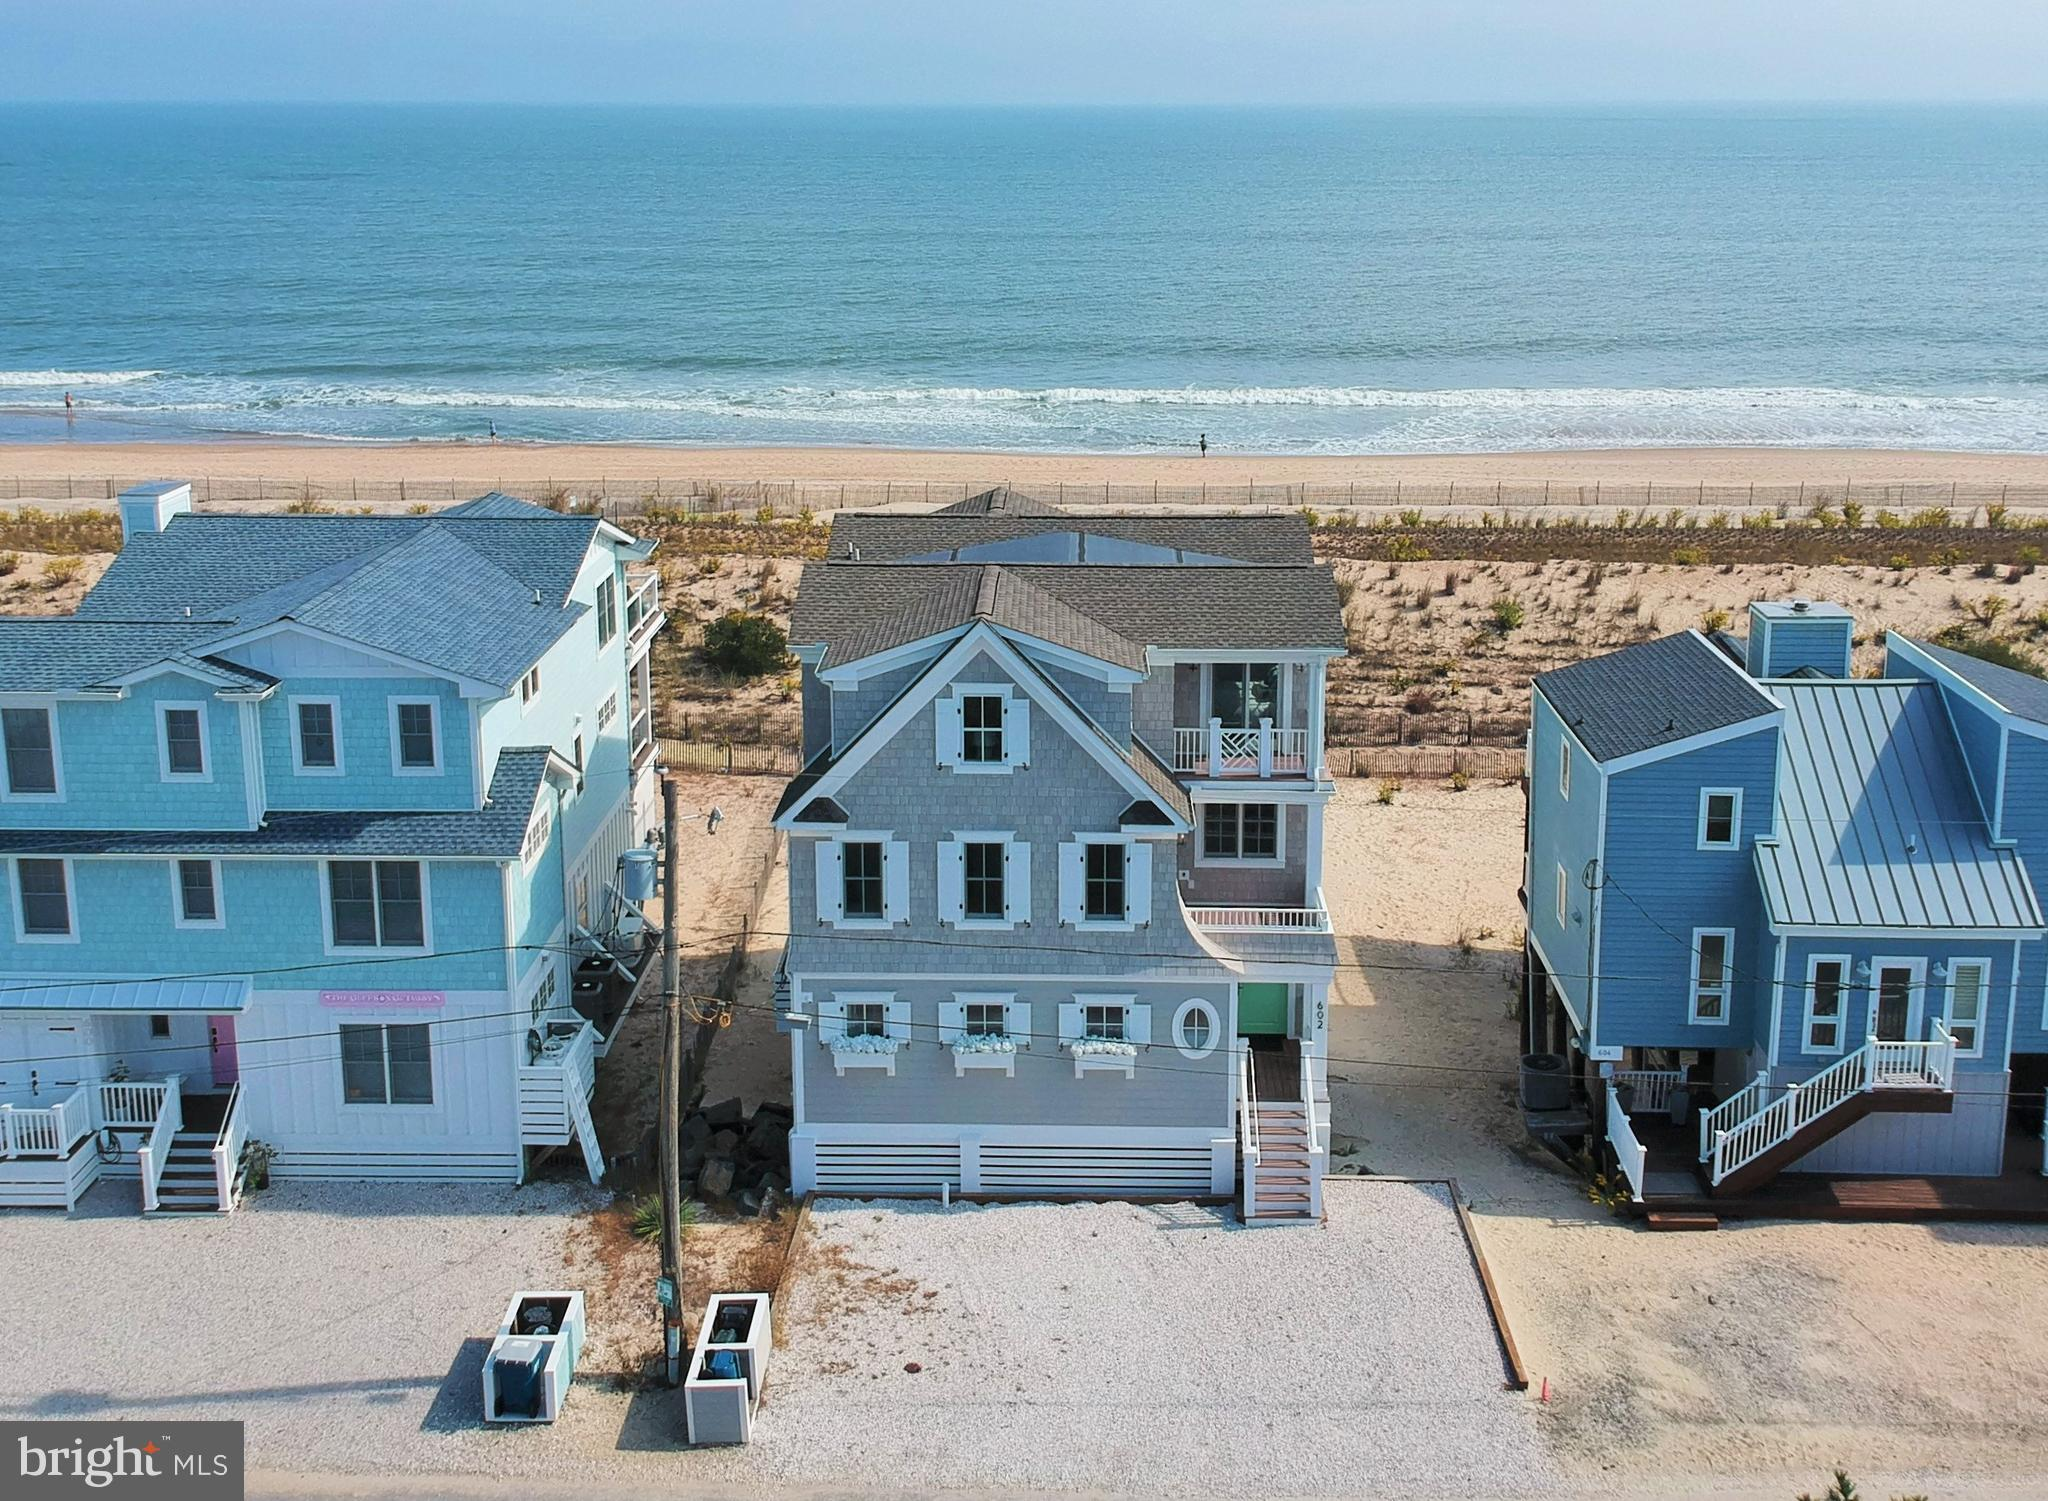 This stunning Oceanfront home was built in 2020 by recognized builder, Marnie Oursler and is appointed with only the highest end finishes through out.  Designed to capture unparalleled views of the ocean from nearly every room, absolutely no detail was spared in this luxury beach home.  Upon entering, the impressive foyer welcomes you to the first level which features an intricate en-suite bunk room, a second living room or 6th bedroom is also on this level as well as a powder room, outside shower and dream laundry room equipped with high end cabinetry and a beverage refrigerator to make coming and going to the beach a breeze.  Take the elevator or stunning staircase to the main level where the impressive light filled great room perfectly blends a dream gourmet kitchen with the dining area, living room with wet bar and over-sized screened porch plus a sun deck.  A pantry, powder room and en-suite bedroom complete this floor.  The upper level features a spacious primary suite with an over-sized deck and dramatic views of the ocean from every corner. This level is complete with two additional en-suite bedrooms.  No expense was spared from start to finish as this home offers the very finest in beach living. NuCedar PVC shingle siding, Wolfe and Cove appliances, quartz counter tops, Calacatta Berini marble surround for the fireplace and wet bar plus an abundance of light fixtures by Serena and Lily.  This home has steel plates on 6000 psi pre-stressed concrete columns and the exterior is 2 x 6 framing.  This beach house strikes the perfect balance between luxury and comfort. Located on a quiet life guarded beach close to downtown Bethany's shops and restaurants.